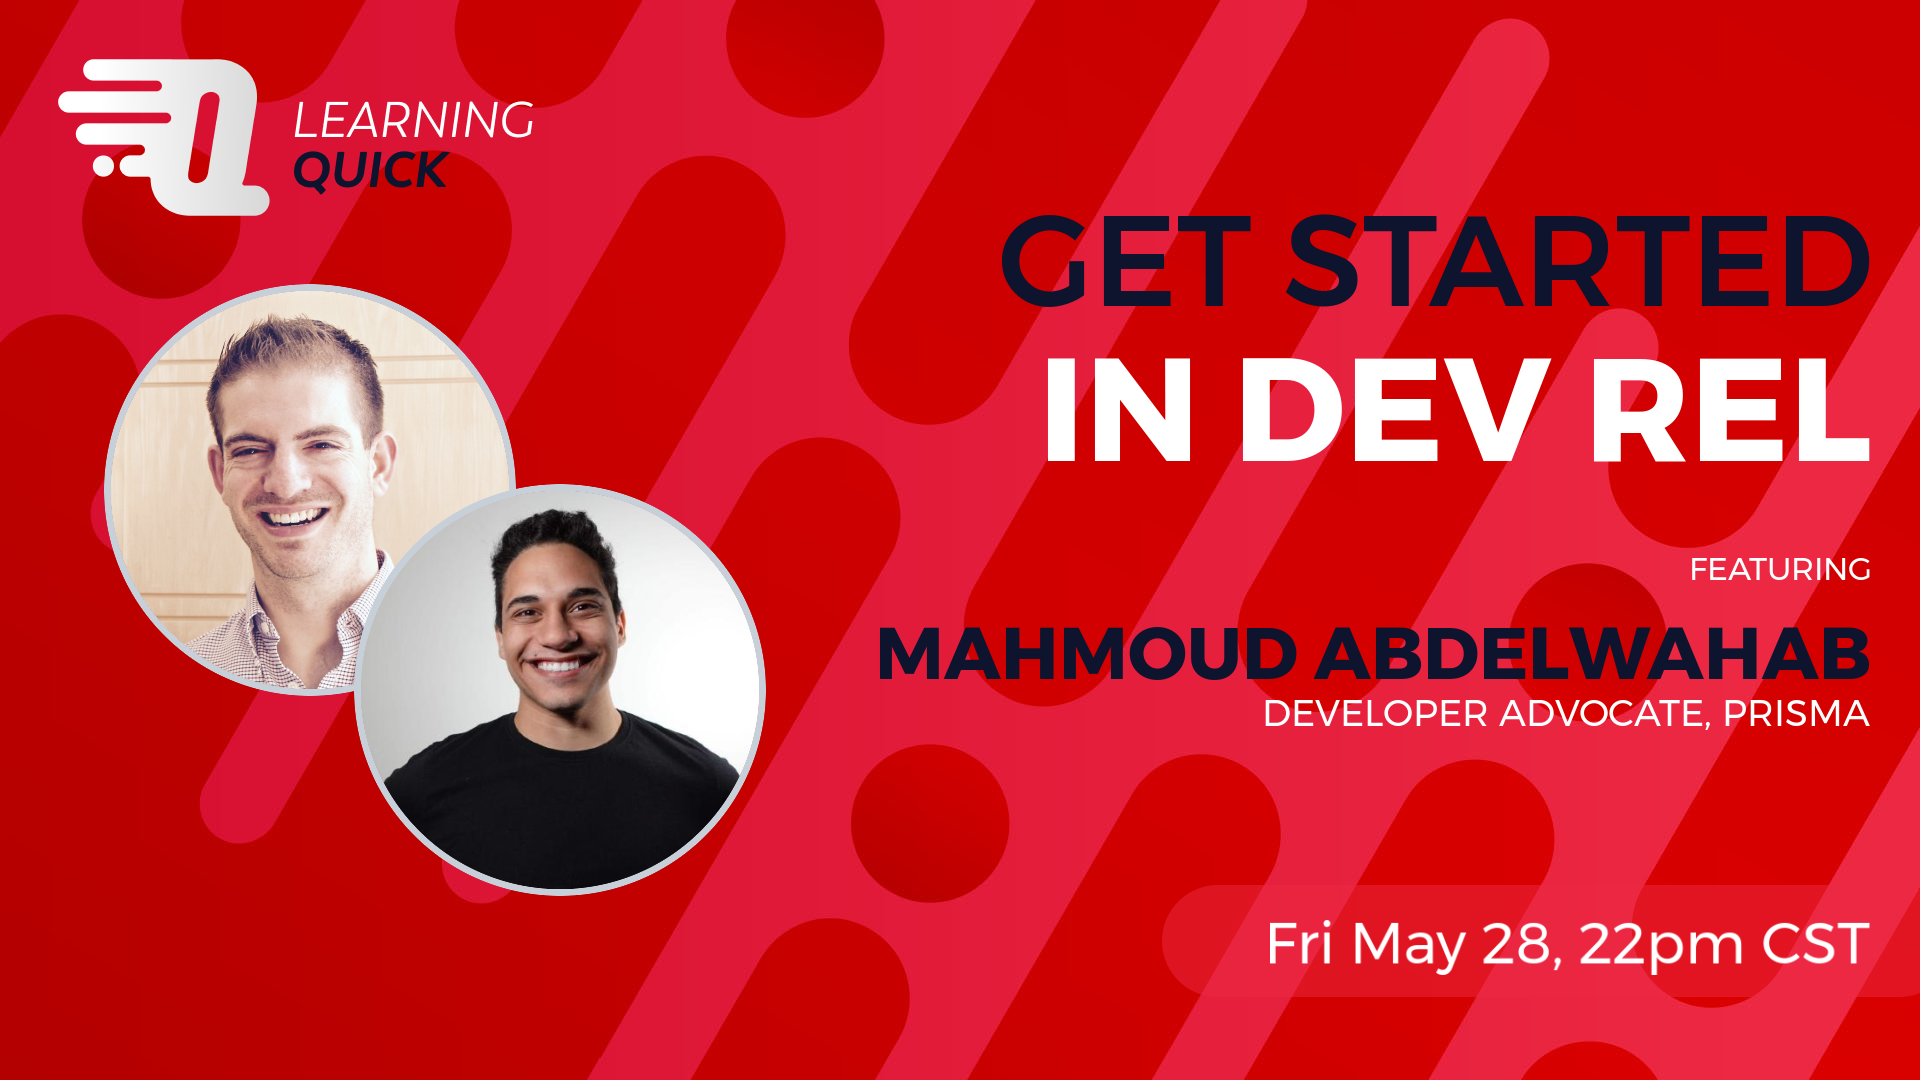 Get Started in Dev Rel with Mahmoud Abdelwahab